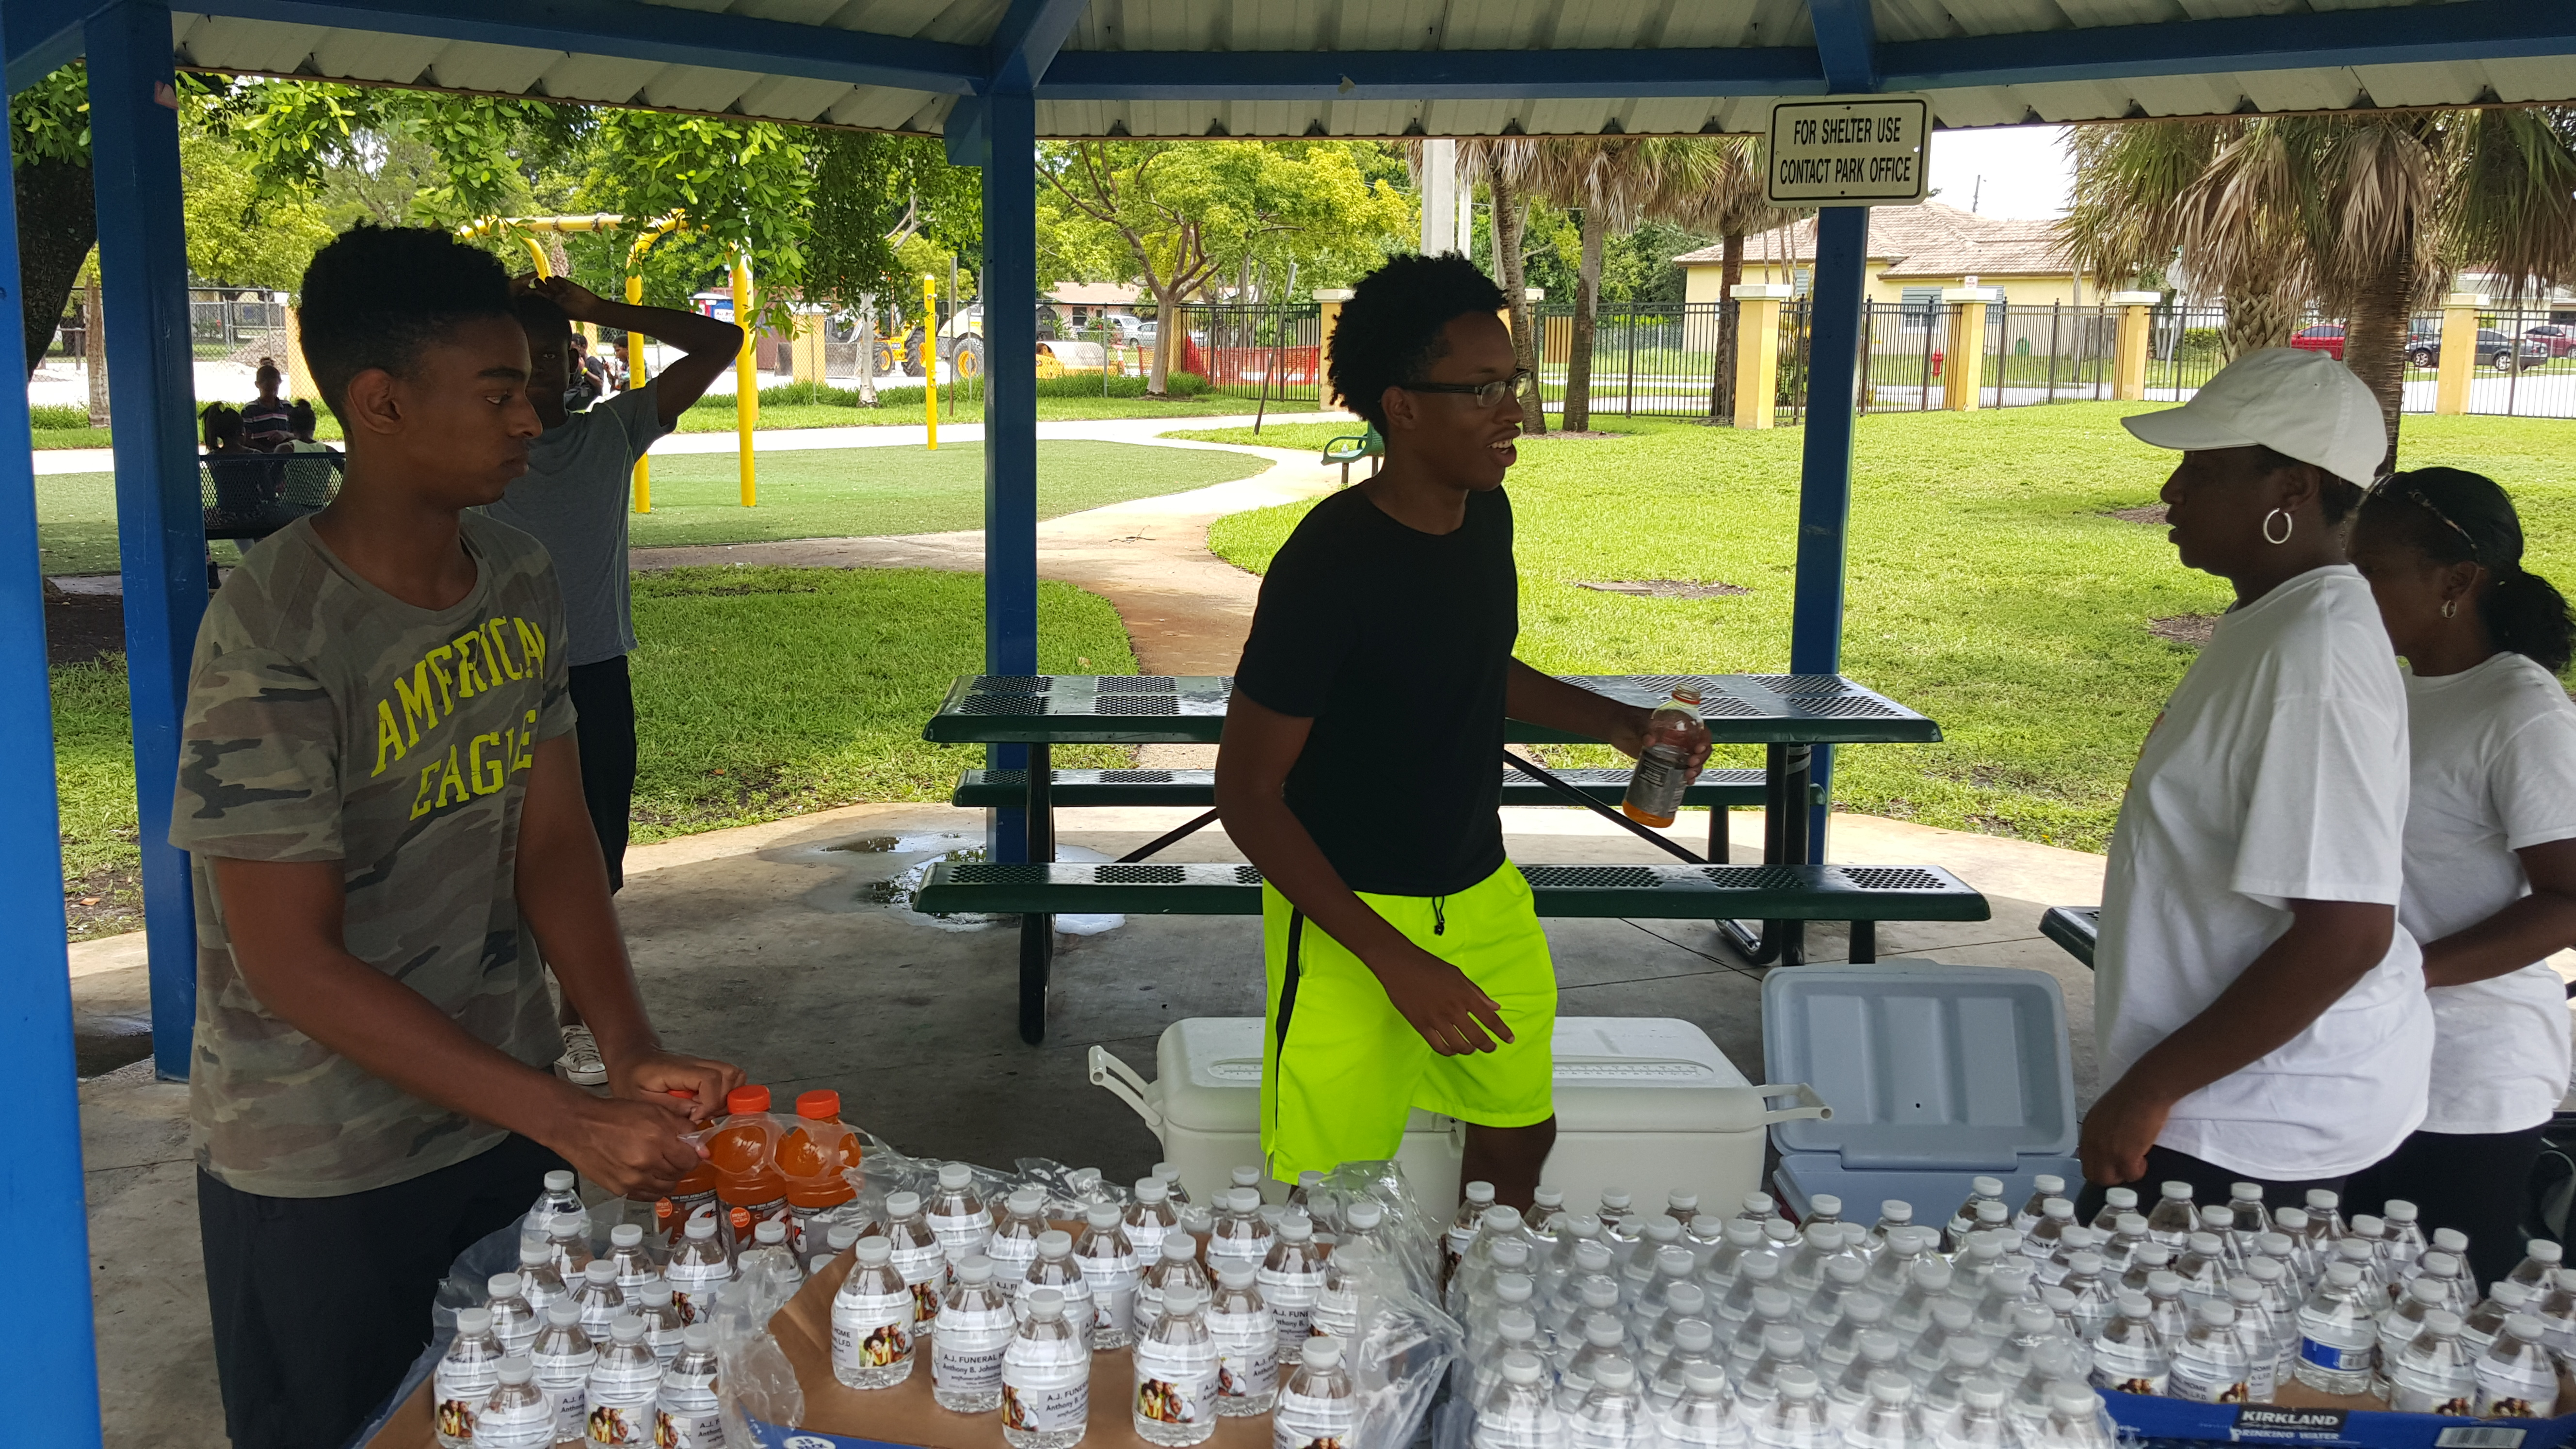 20150815 132506 - Community Give Back - Backpack-A-Thon 2015